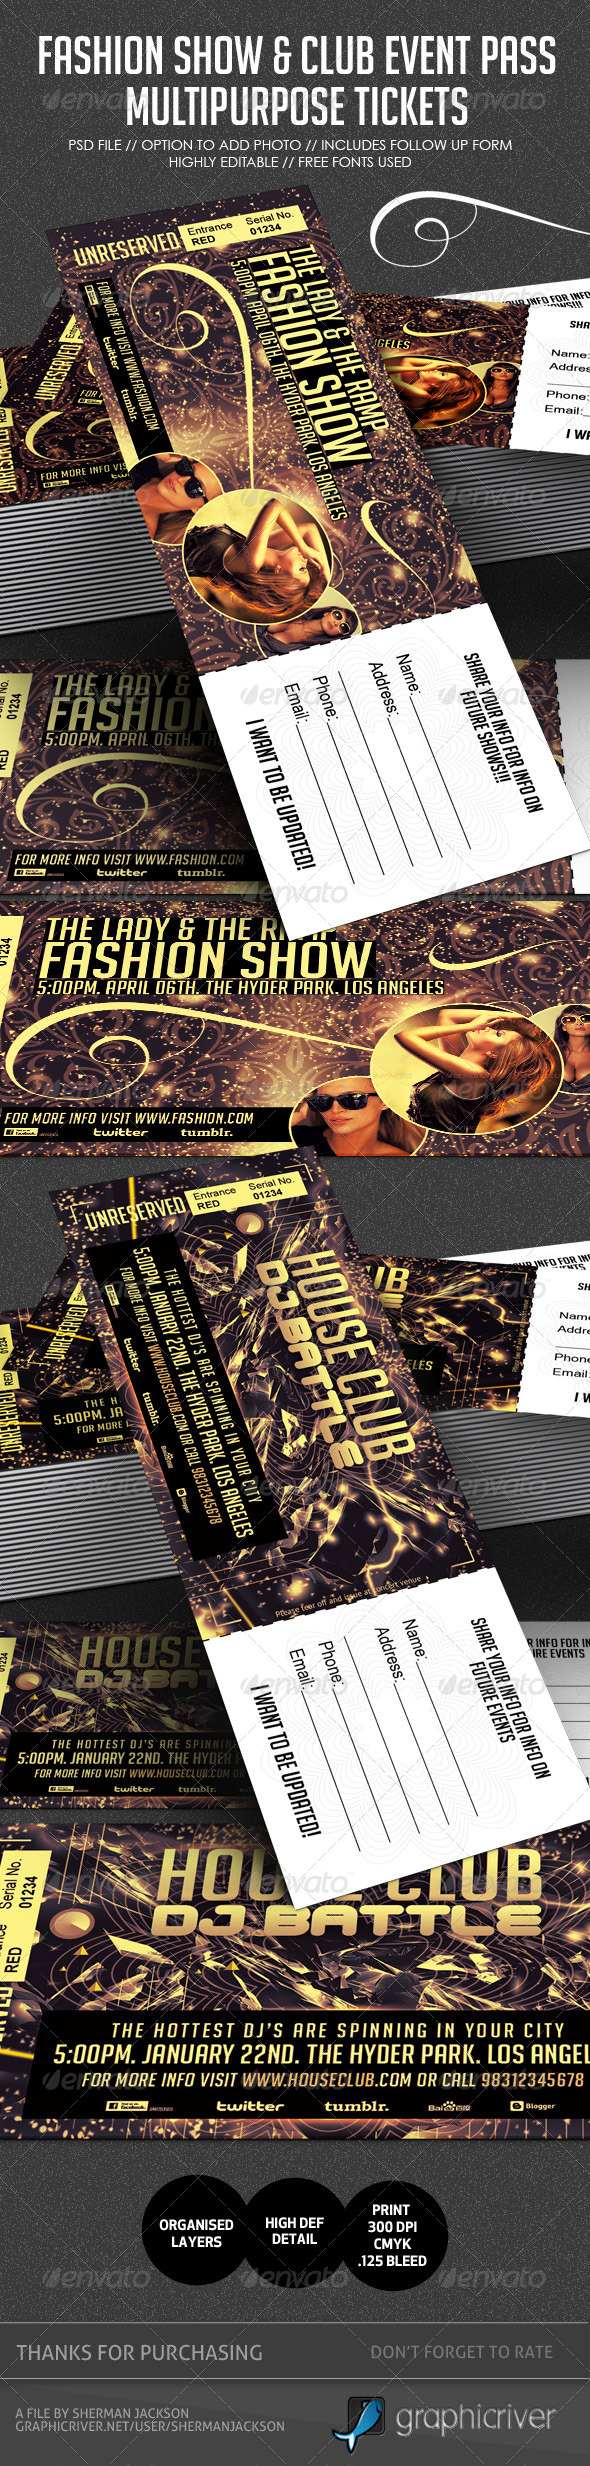 Vip concert passes template for Fashion show ticket template